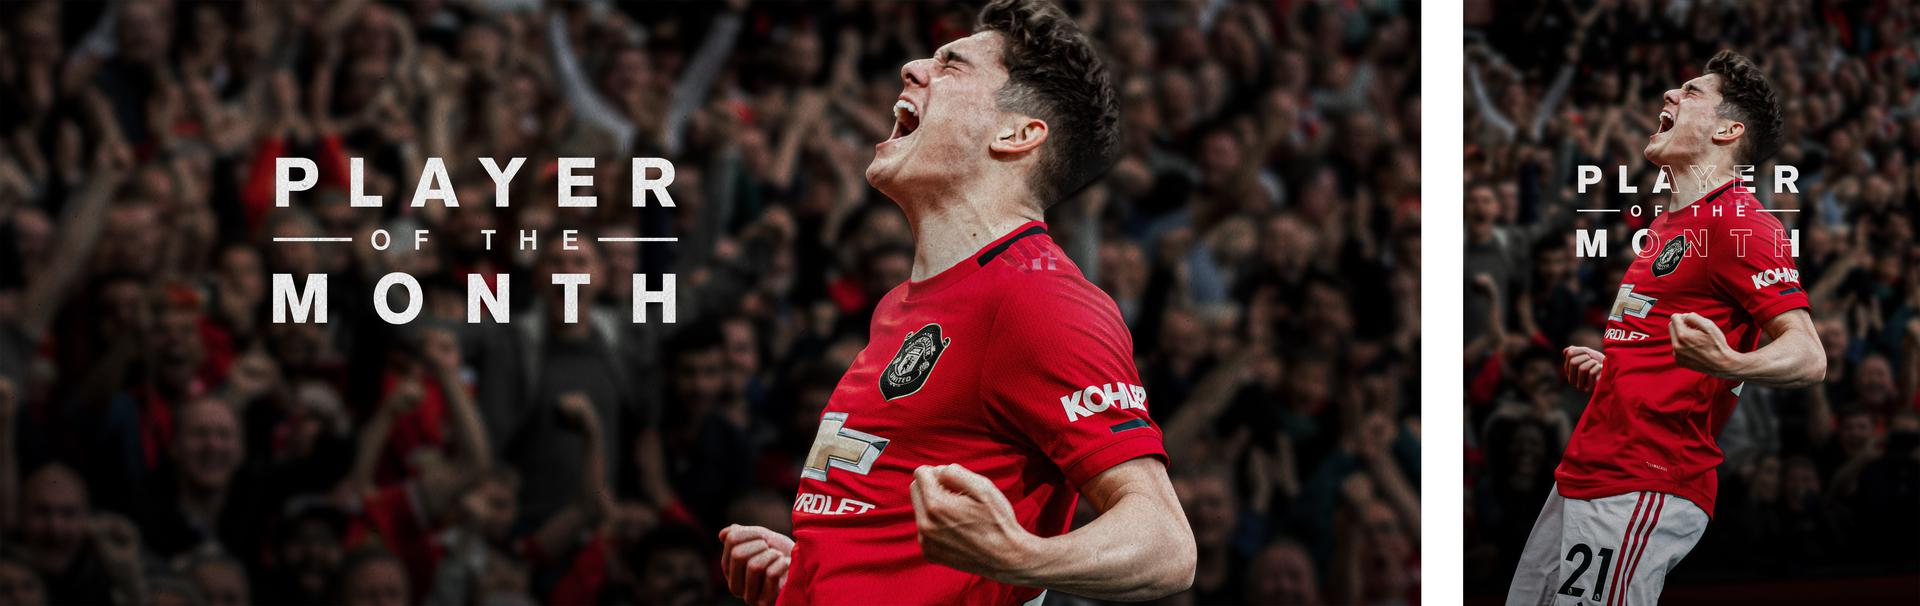 Daniel James Player of the Month graphic!